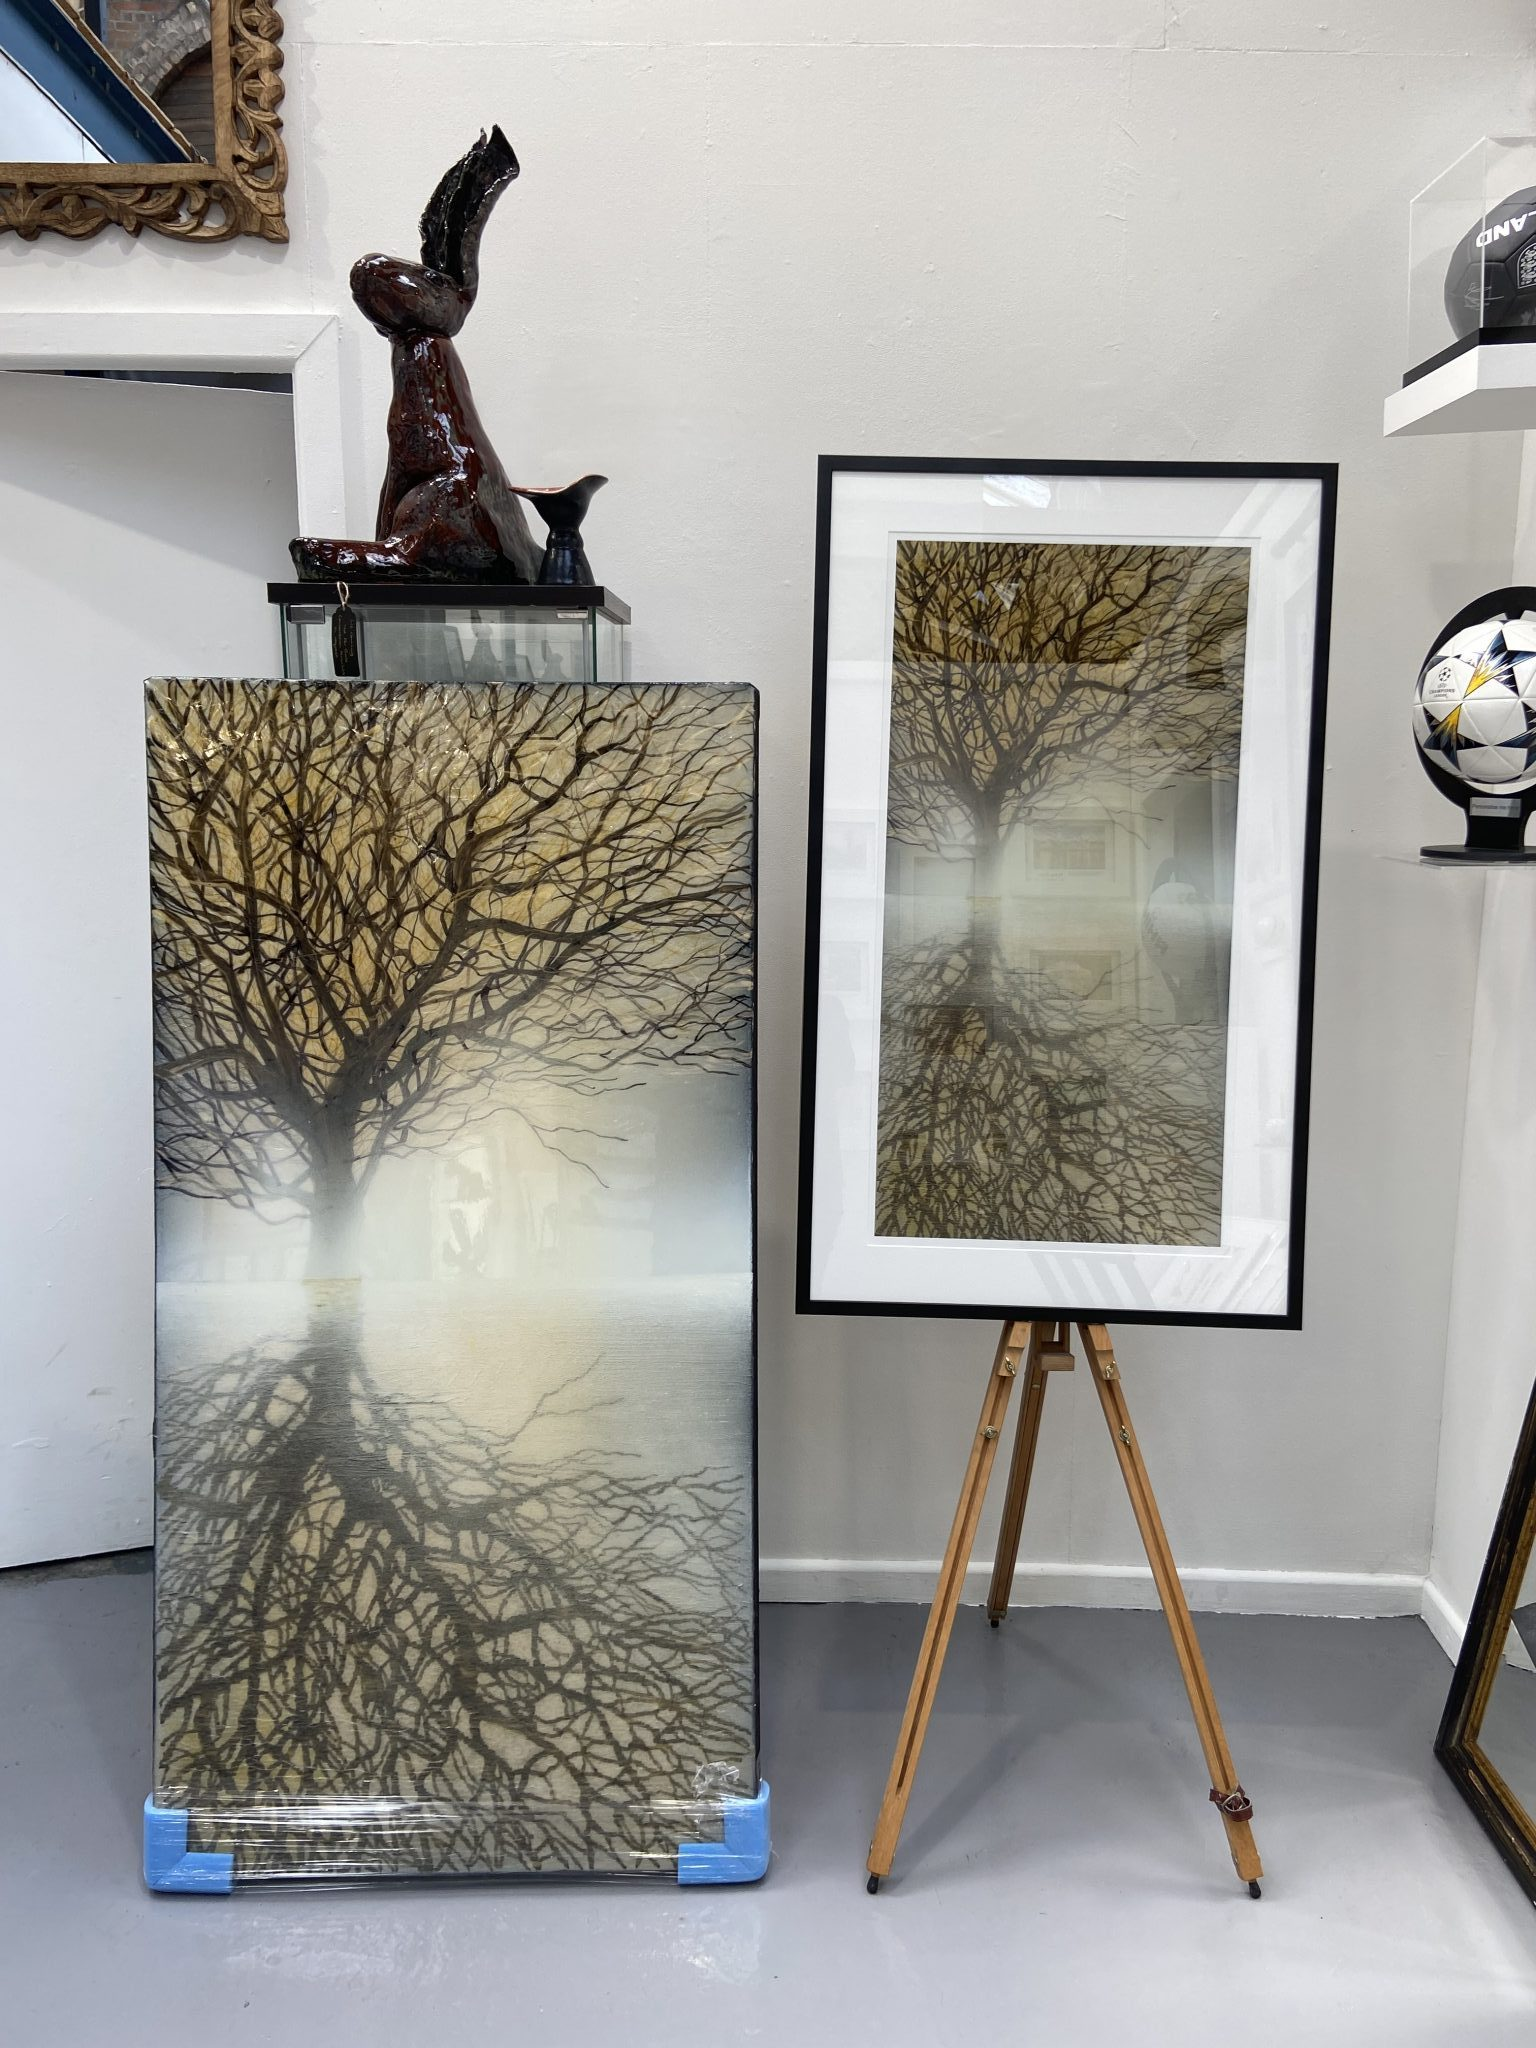 High Resolution Scanning and Giclee Printing at Ironbridge Fine Arts Gallery. Artwork by Robin Eckardt